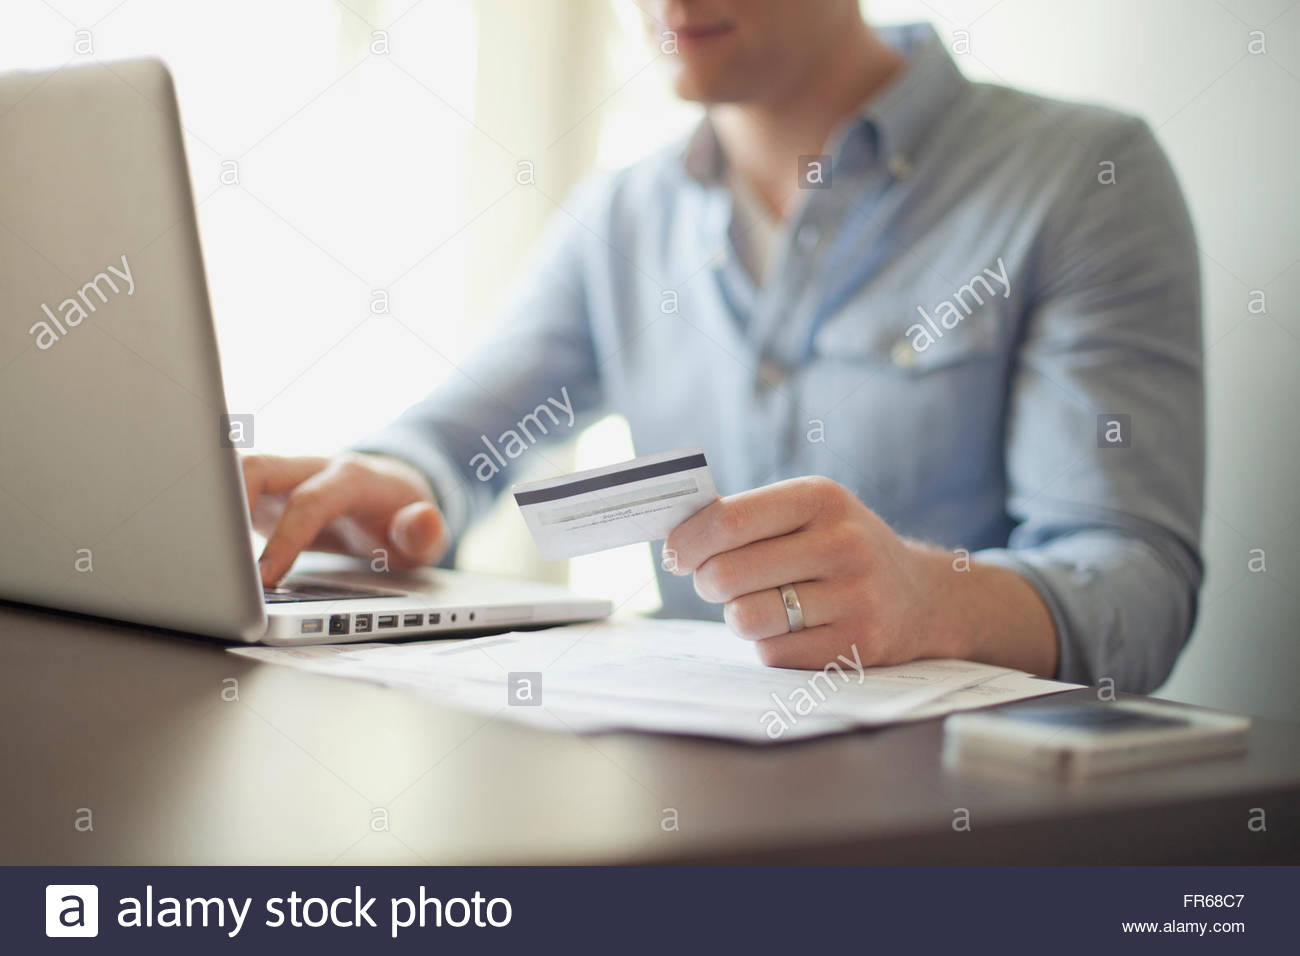 man working on laptop at home - Stock Image